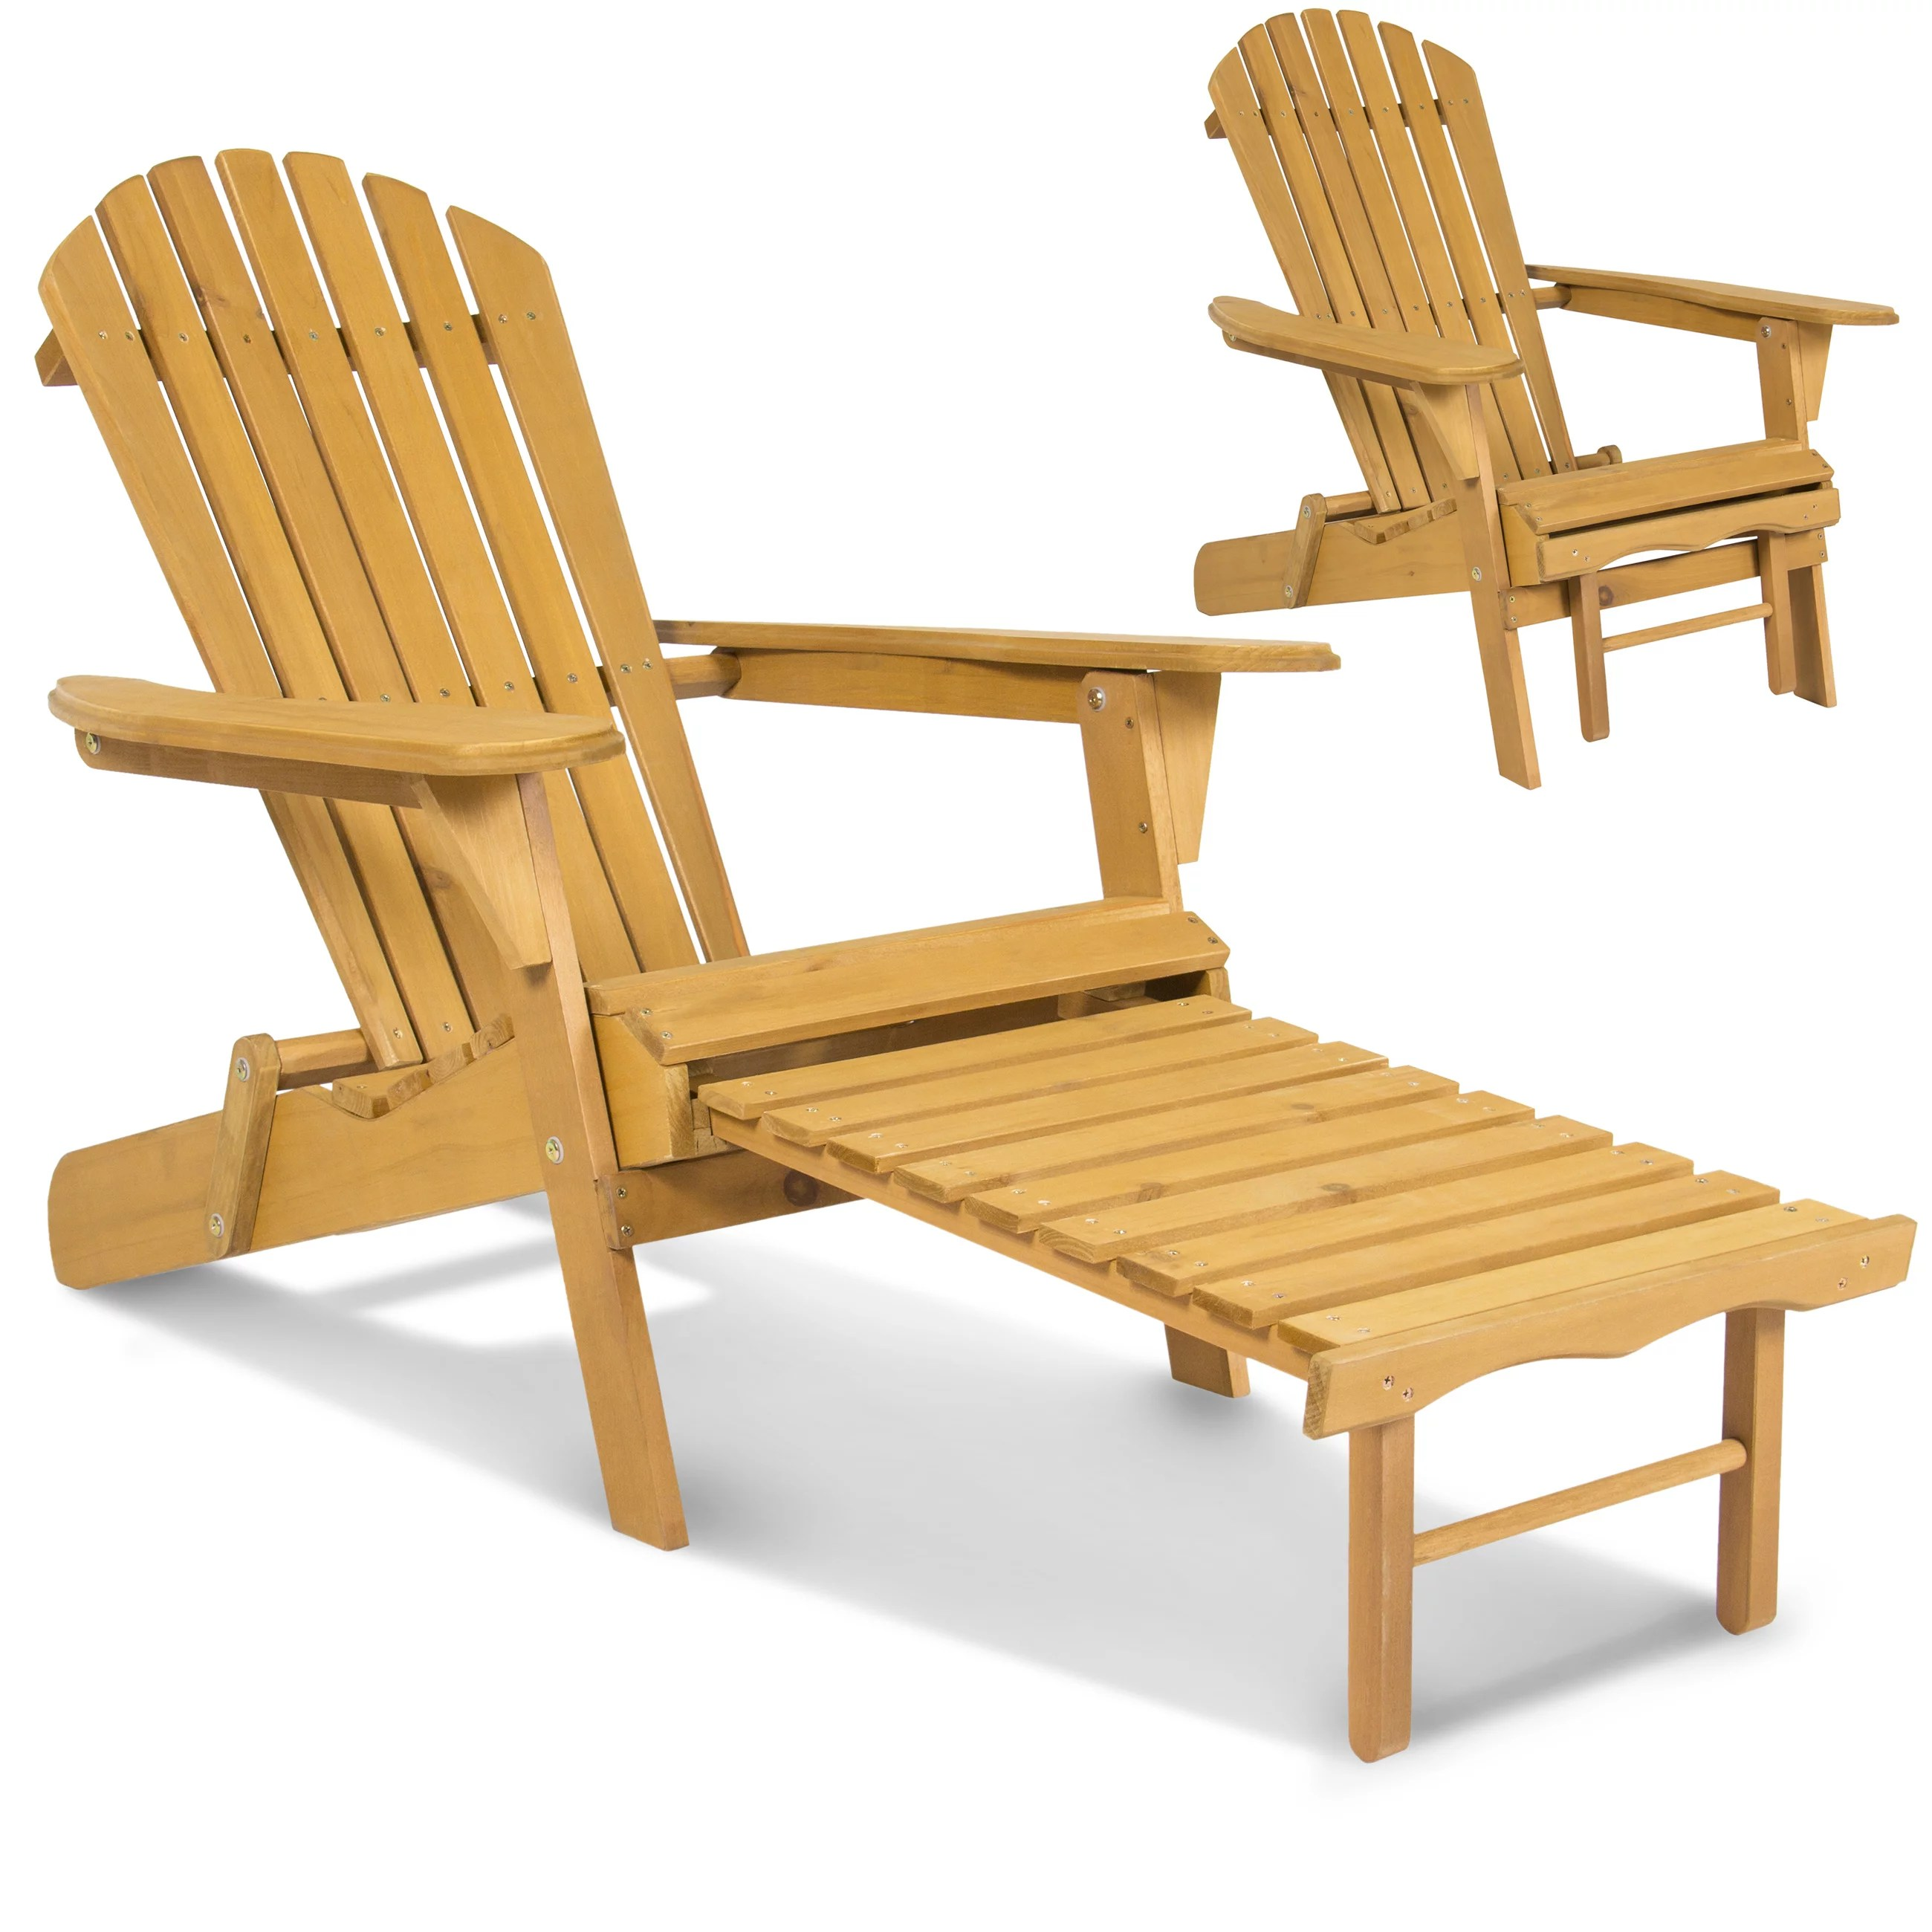 Adirondack Chair Reviews Best Choice Products Foldable Wood Adirondack Chair W Pull Out Ottoman